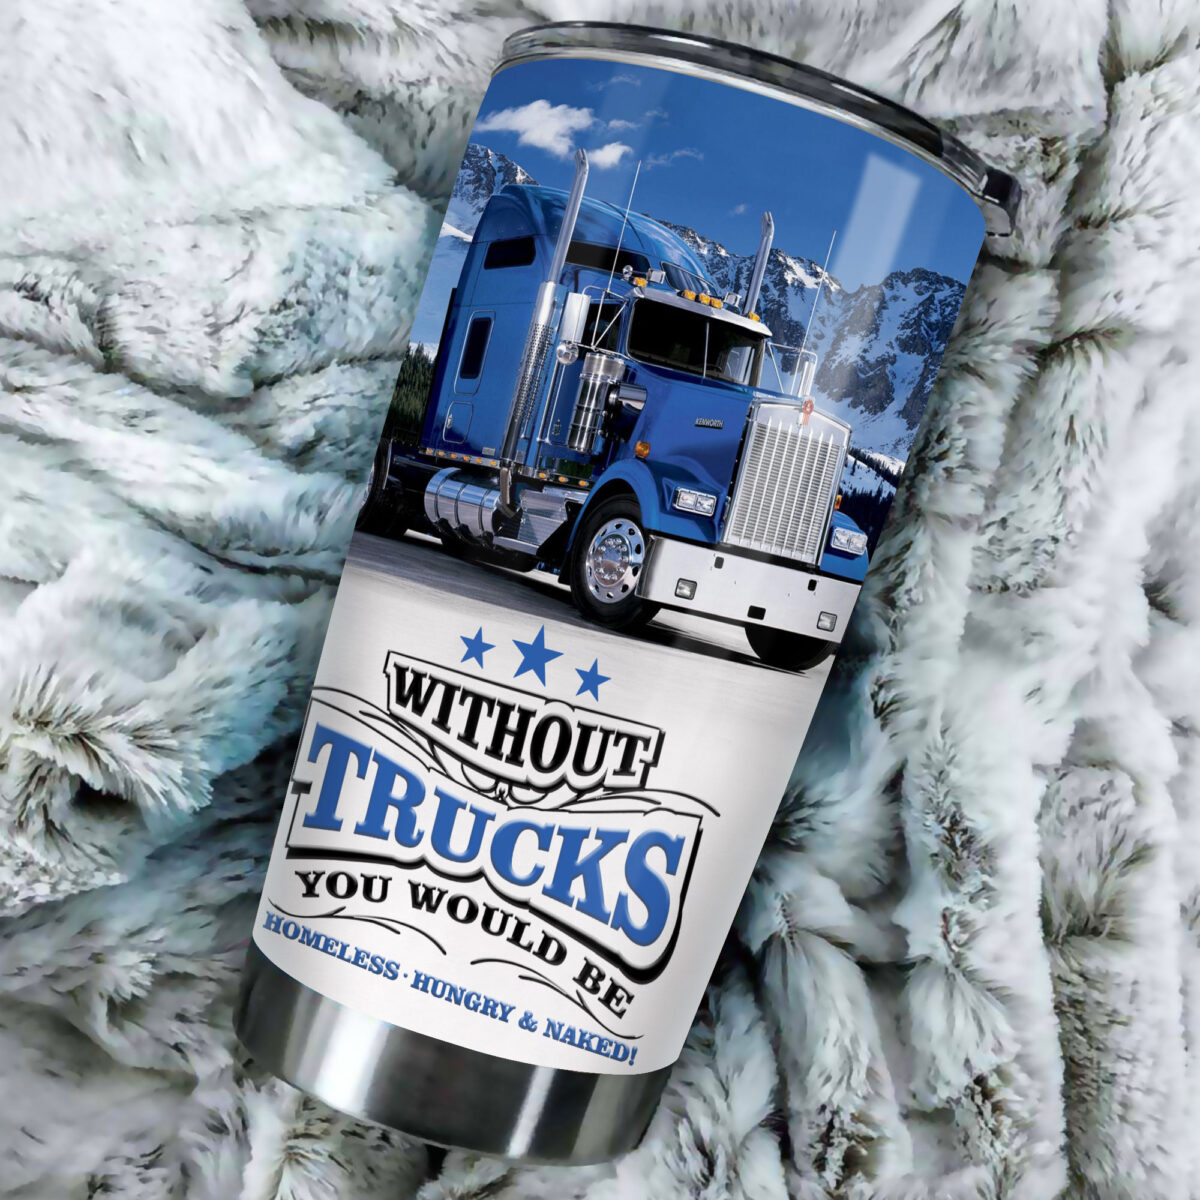 without trucks you would be all over print stainless steel tumbler 5